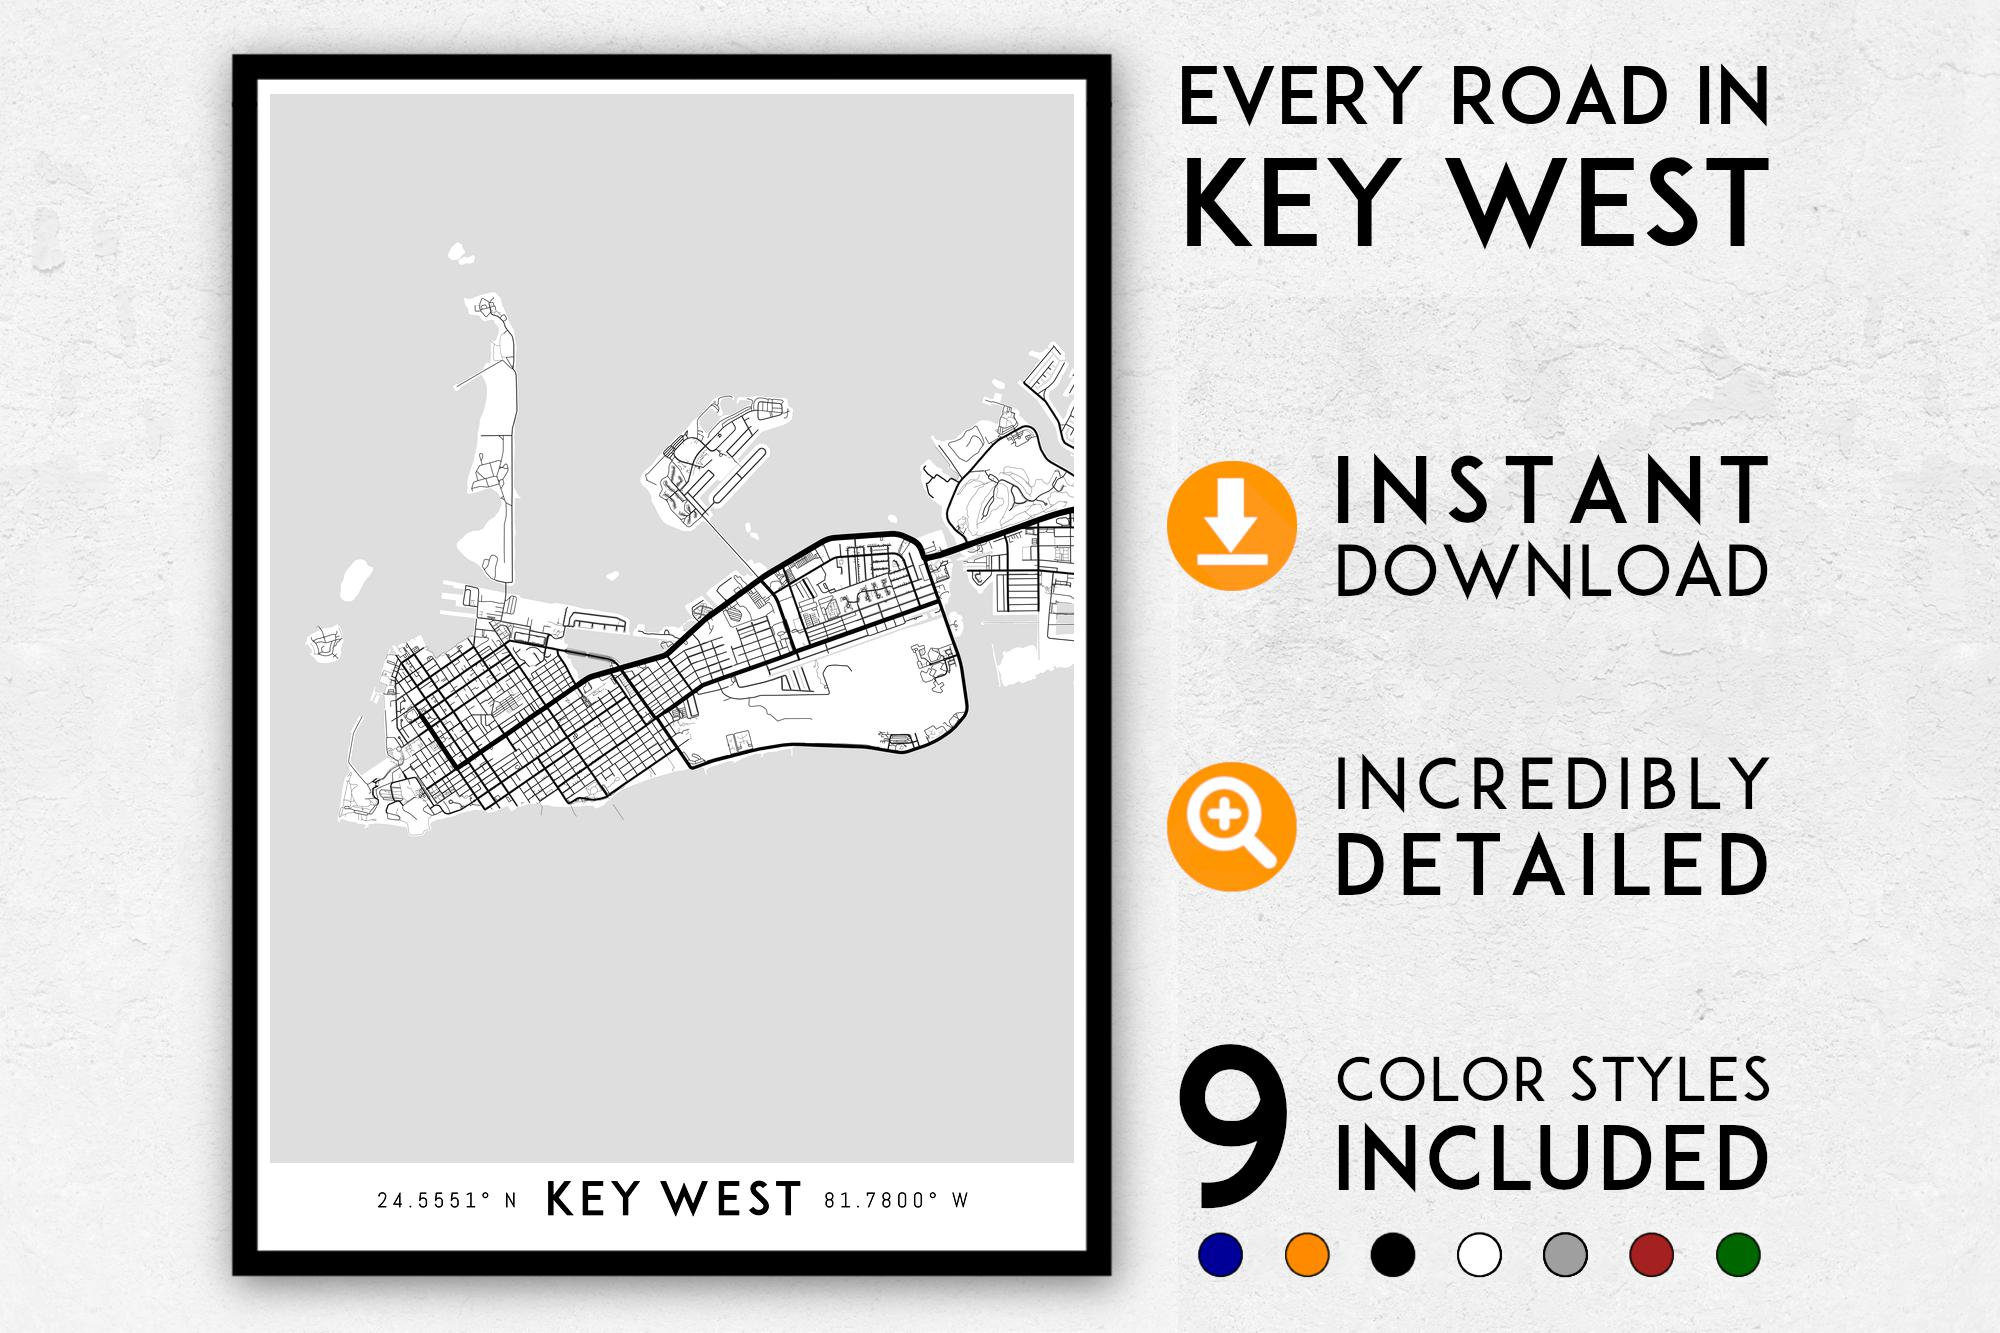 Key West Map Print Key West Print Florida Keys Map Key West | Etsy - Florida Keys Map Poster